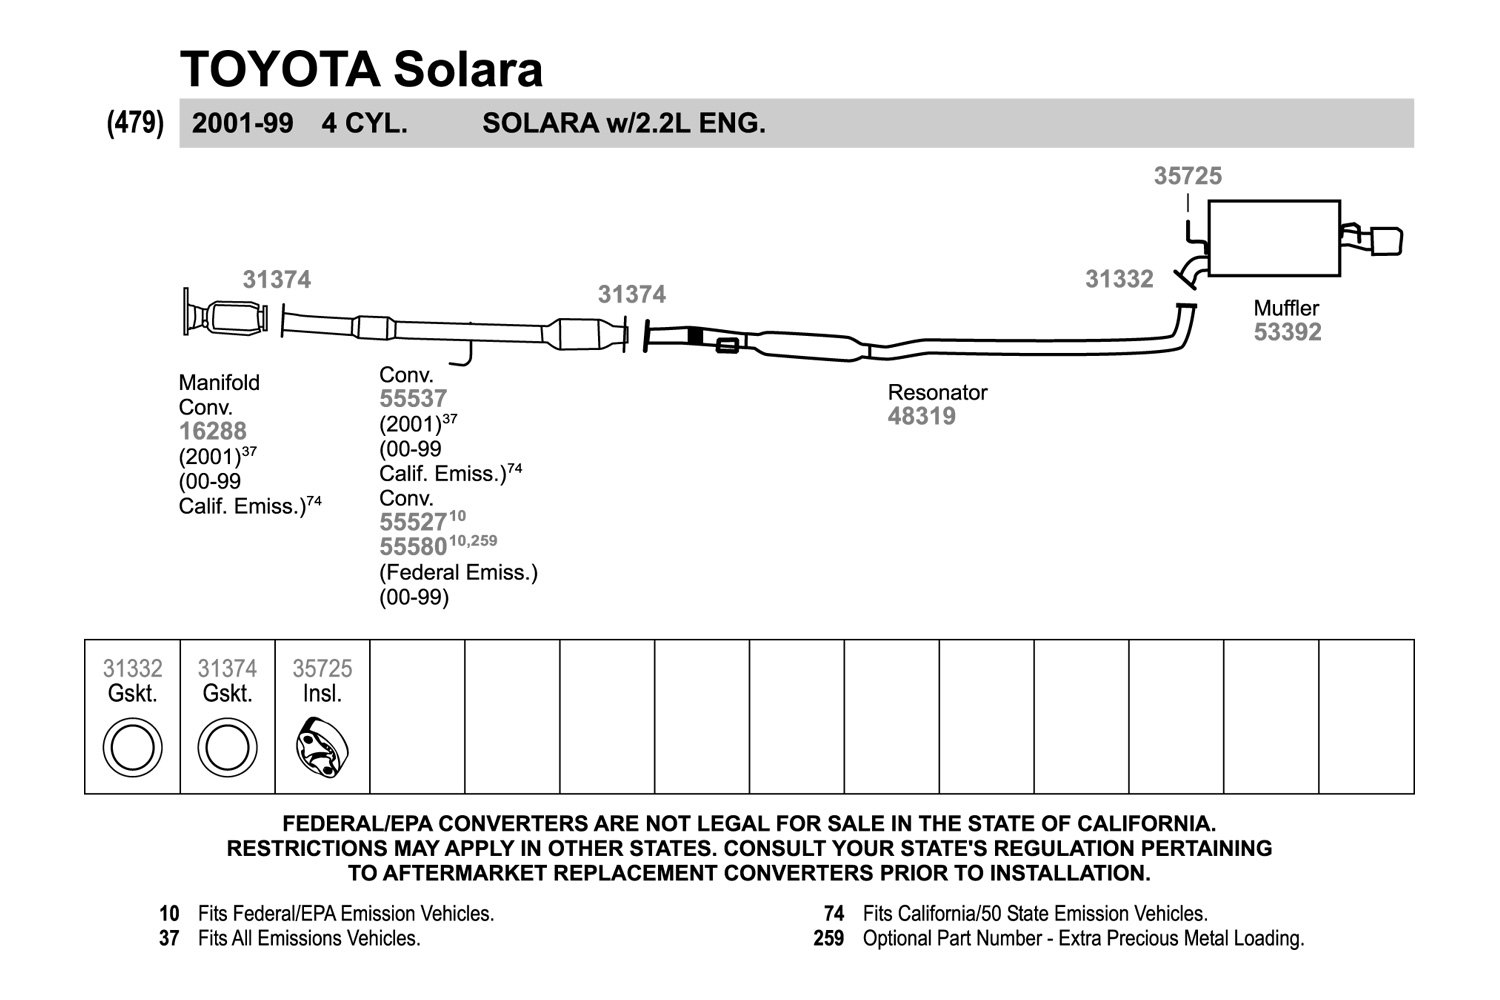 Walker 31374 Fiber And Metal Laminate Donut Exhaust Pipe Flange 2004 Toyota Solara Diagram Replacement Kit